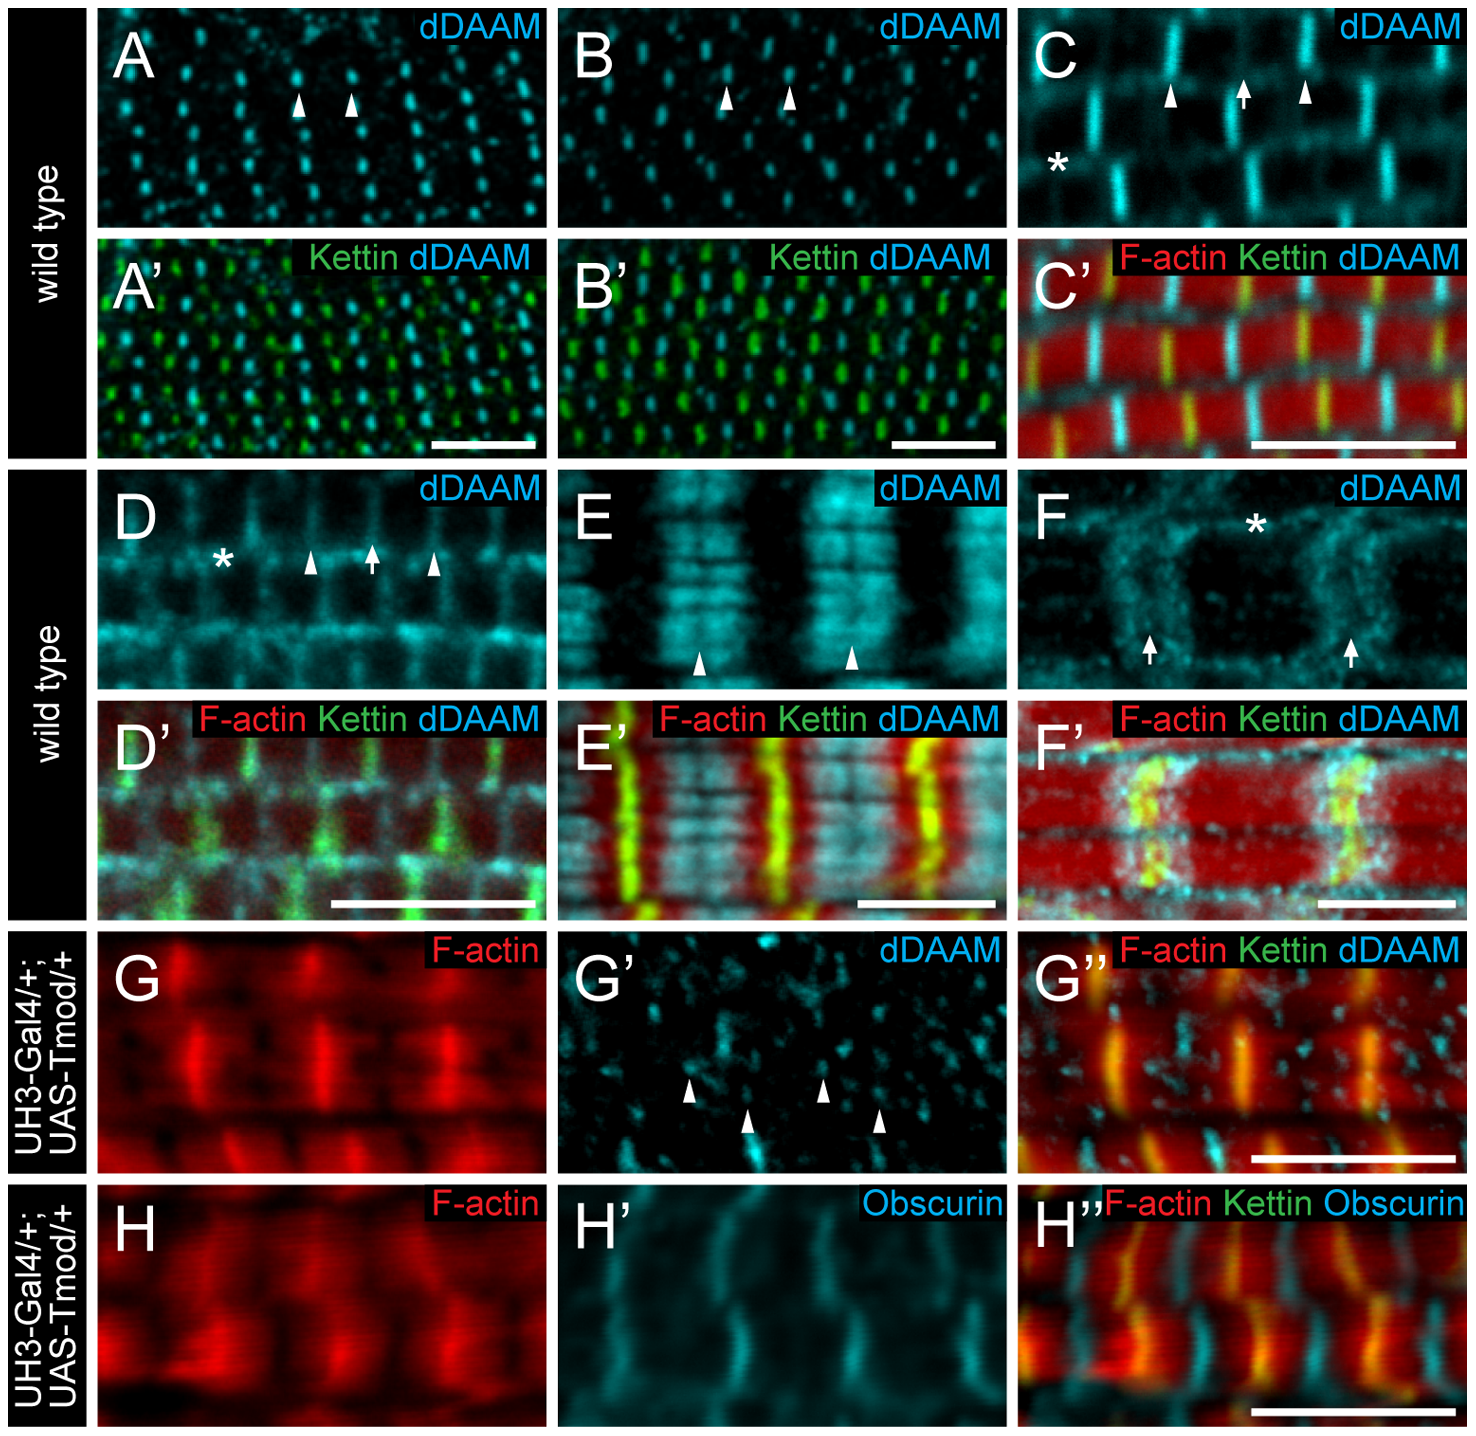 Sarcomeric localization of the dDAAM protein in the IFM and the larval body wall muscles.